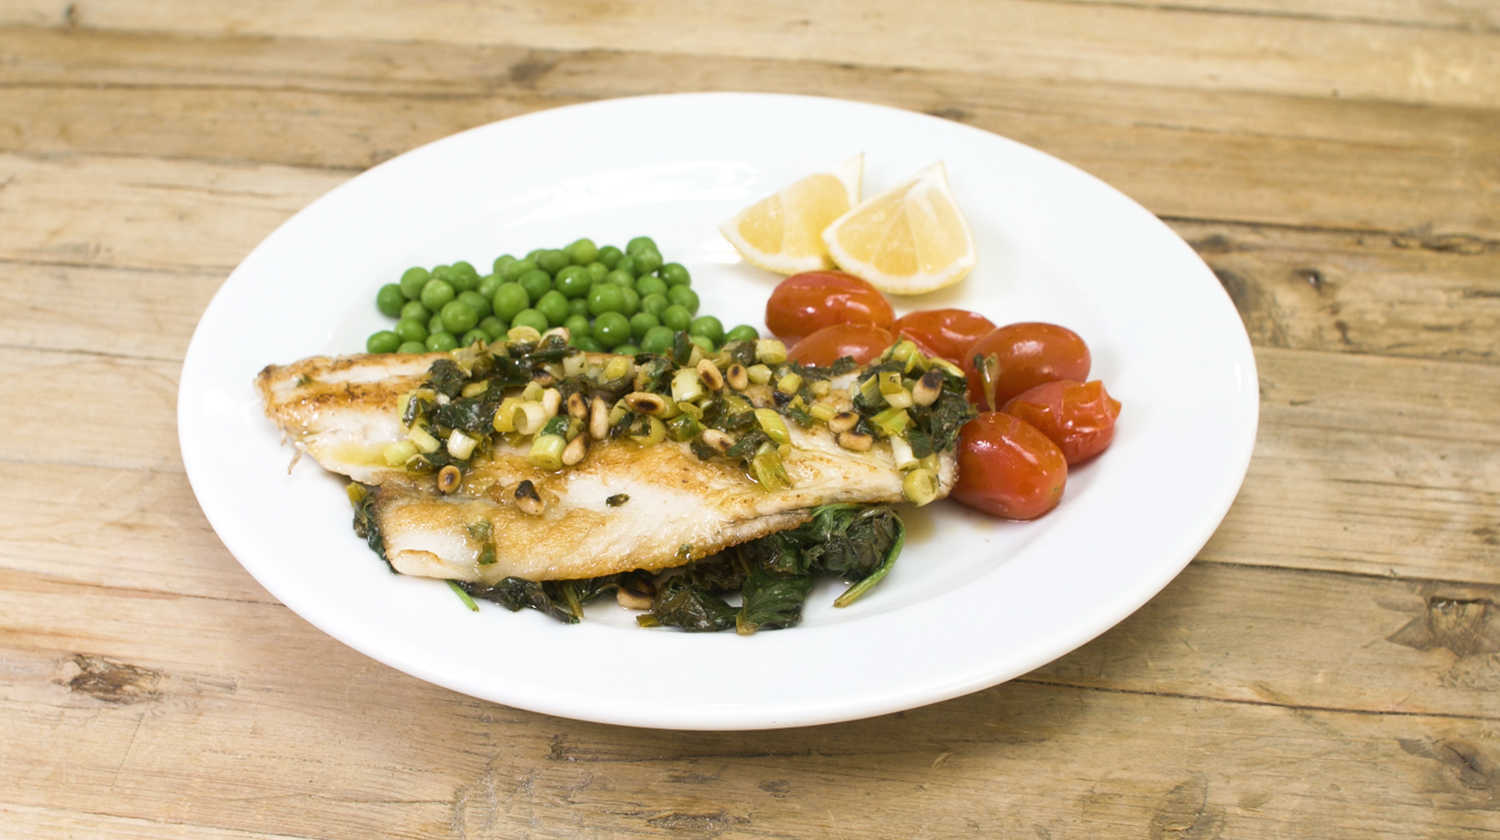 Social-Bodytrim-Fish-with-Spinach-Lemon-Pine-Nuts